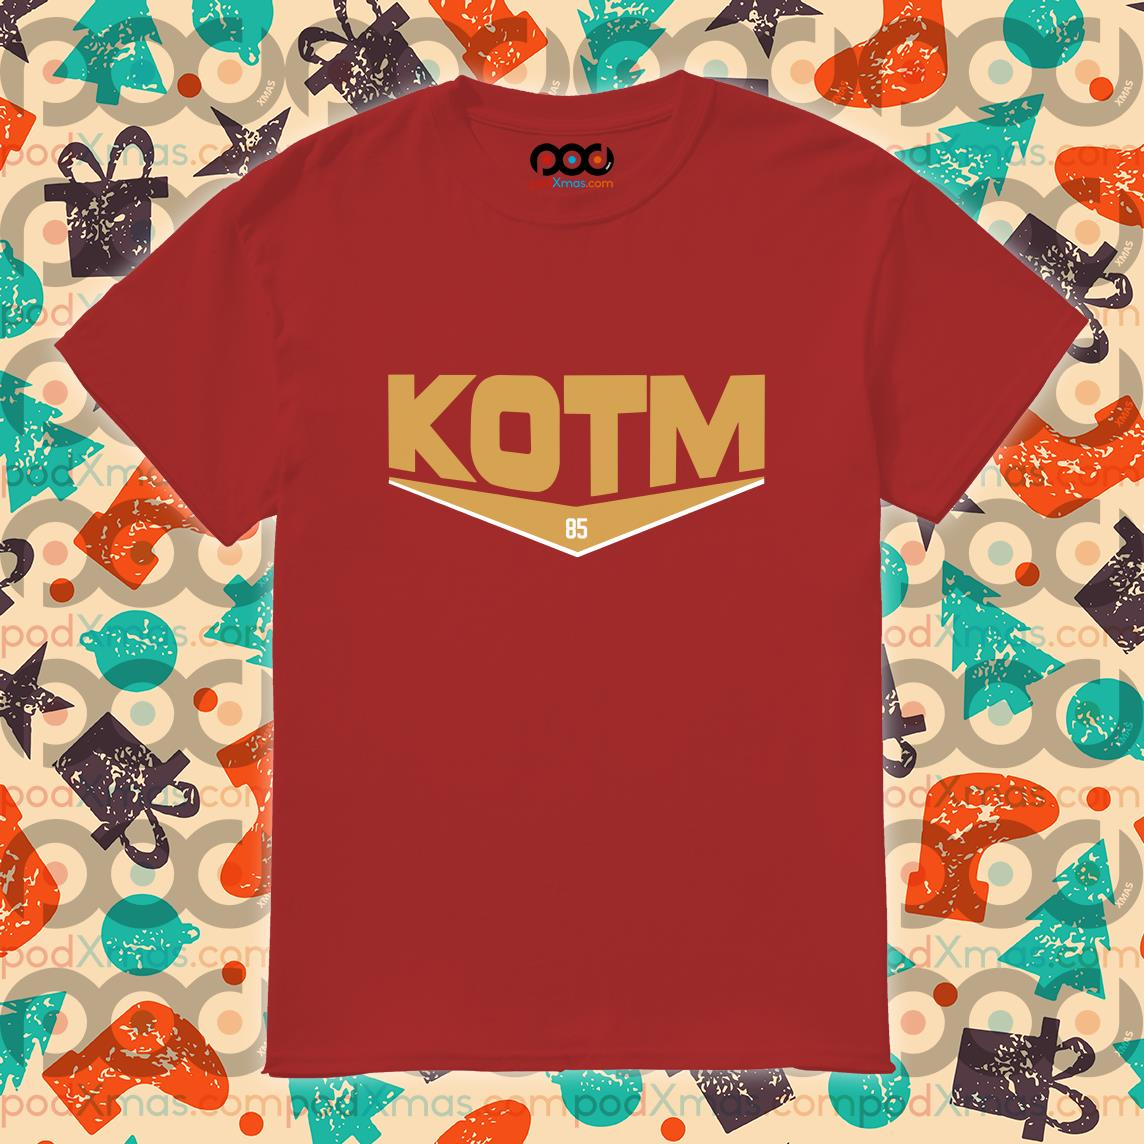 George Kittle KOTM 85 Shirt